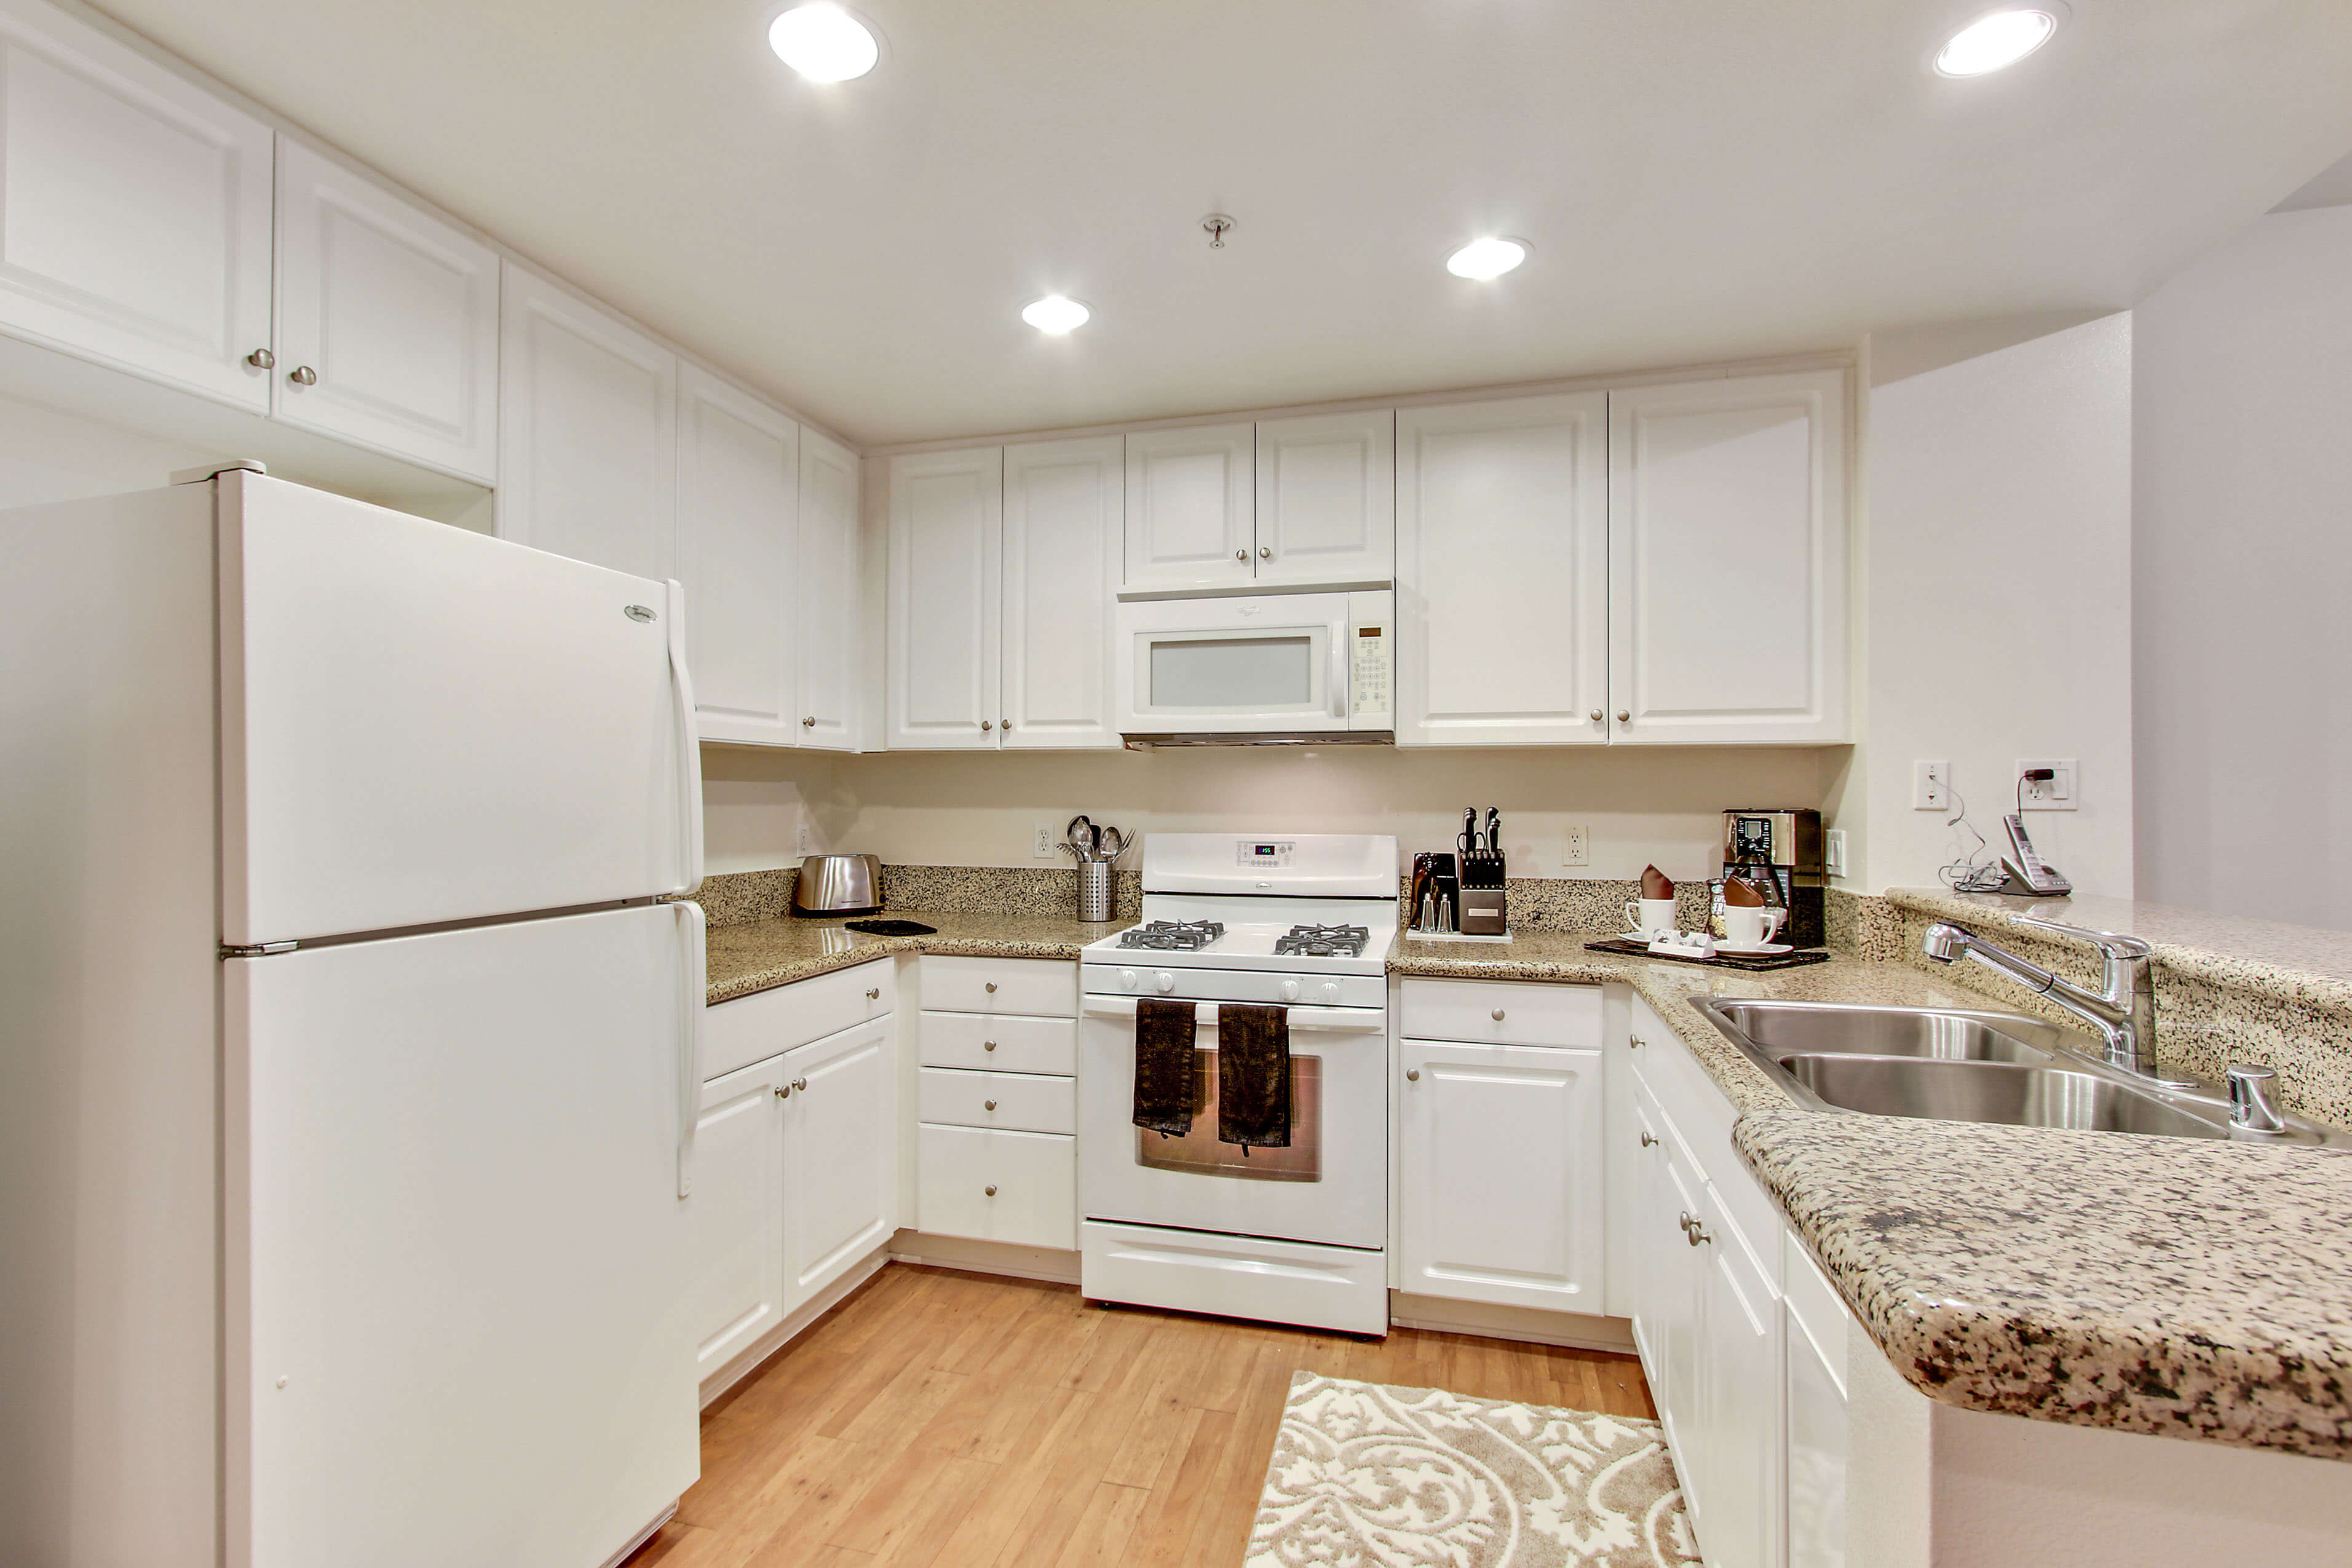 1 Bedroom Apartments For Rent In Orange County 28 Images